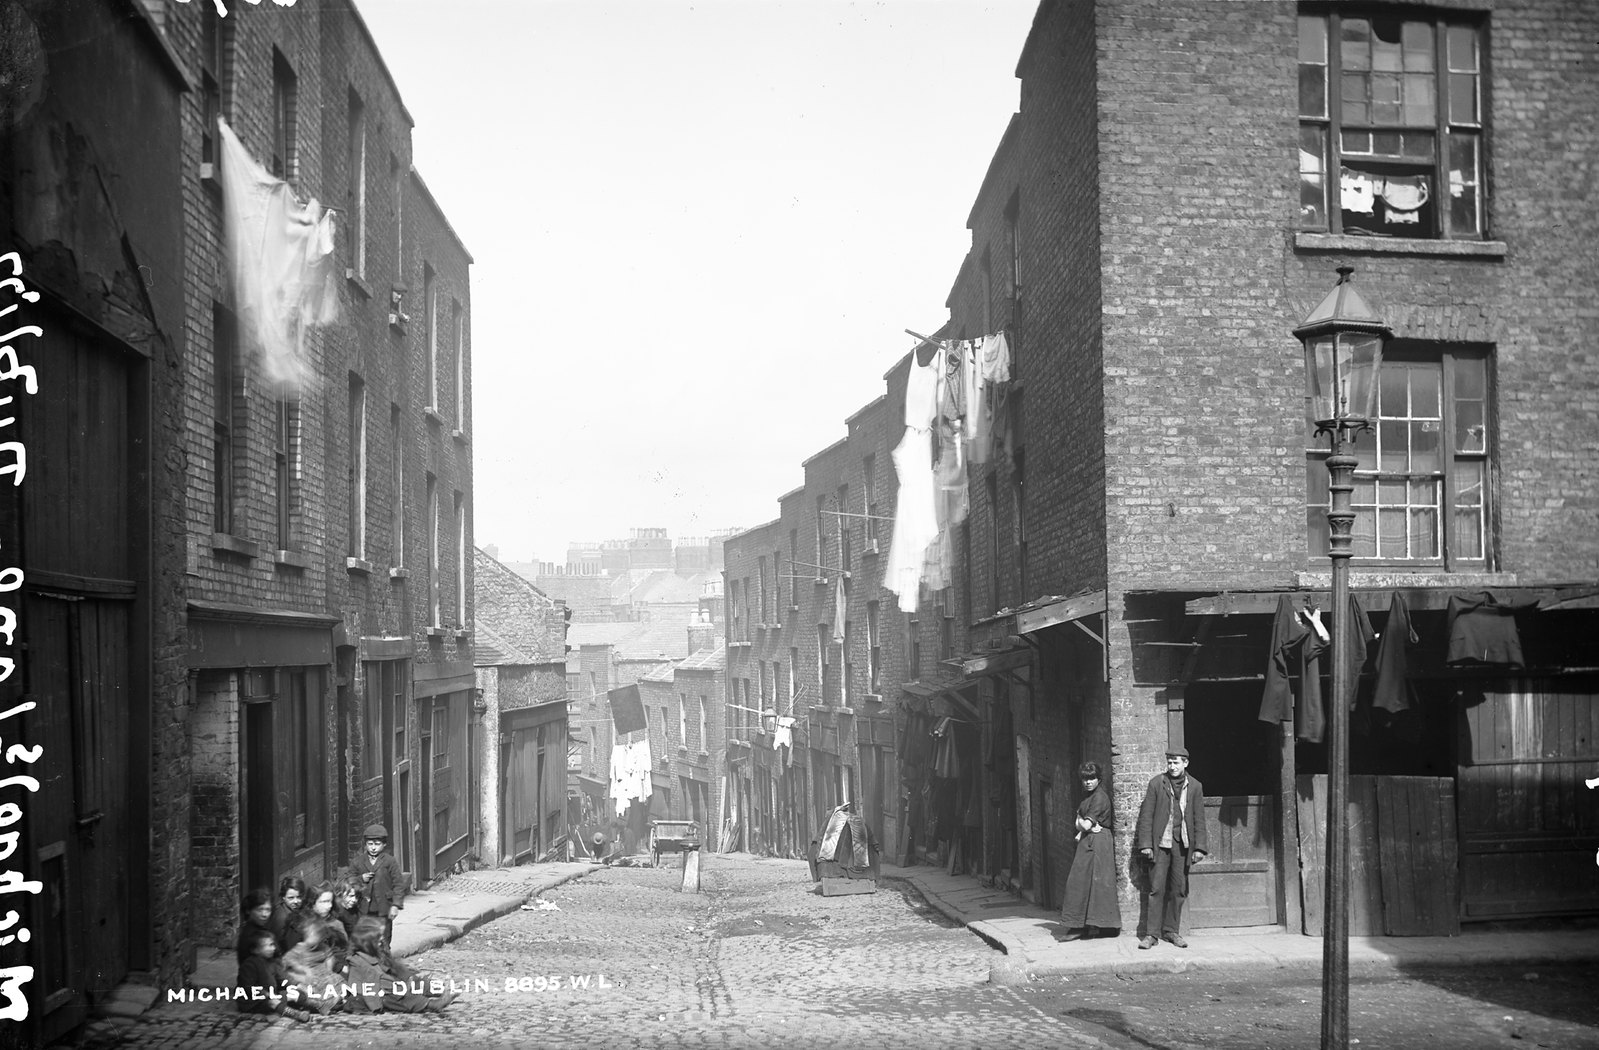 Michael's Lane, Dublin City | by National Library of Ireland on The Commons